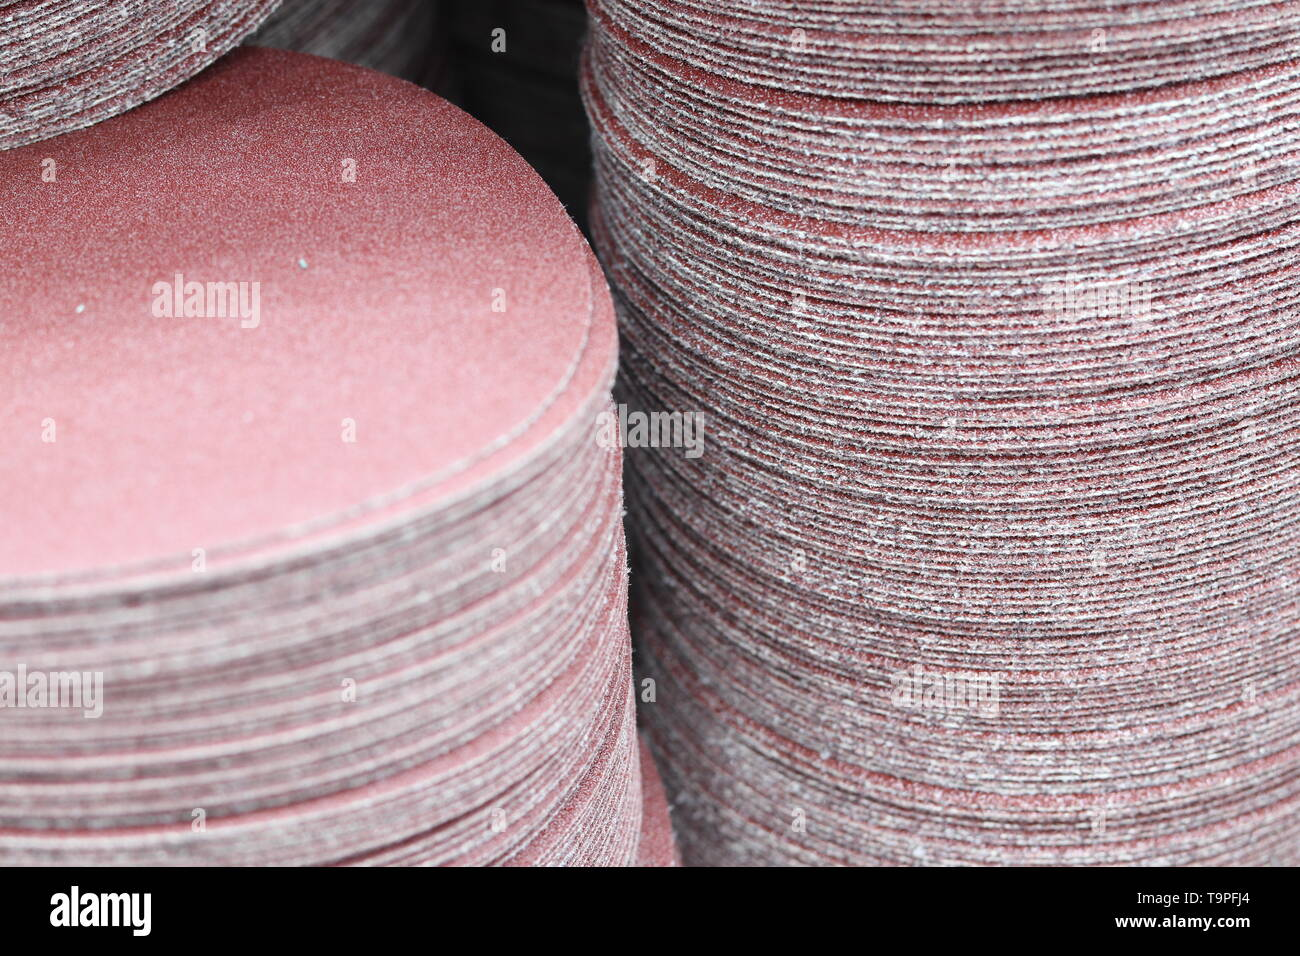 the Stack of sand paper disk ; for manufacturing process - Stock Image